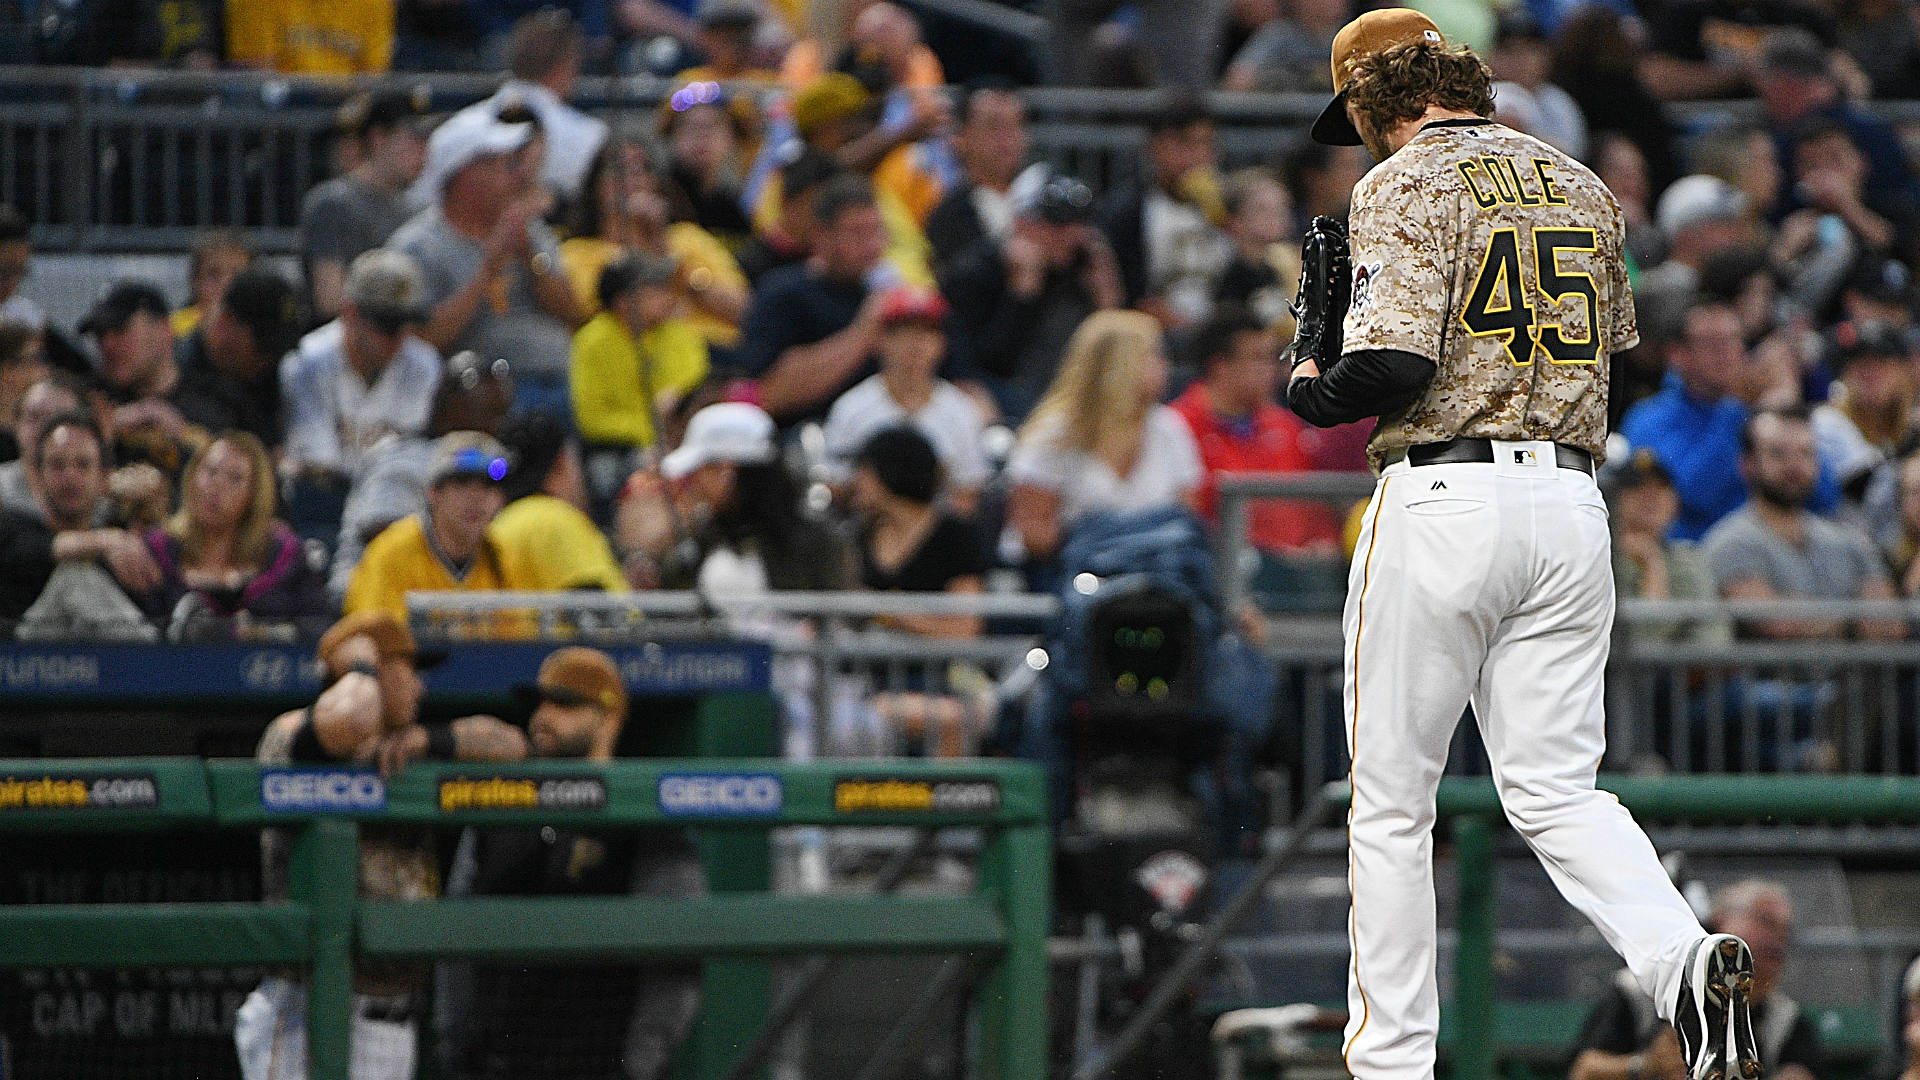 Jameson Taillon to make first start for Pirates since testicular cancer surgery